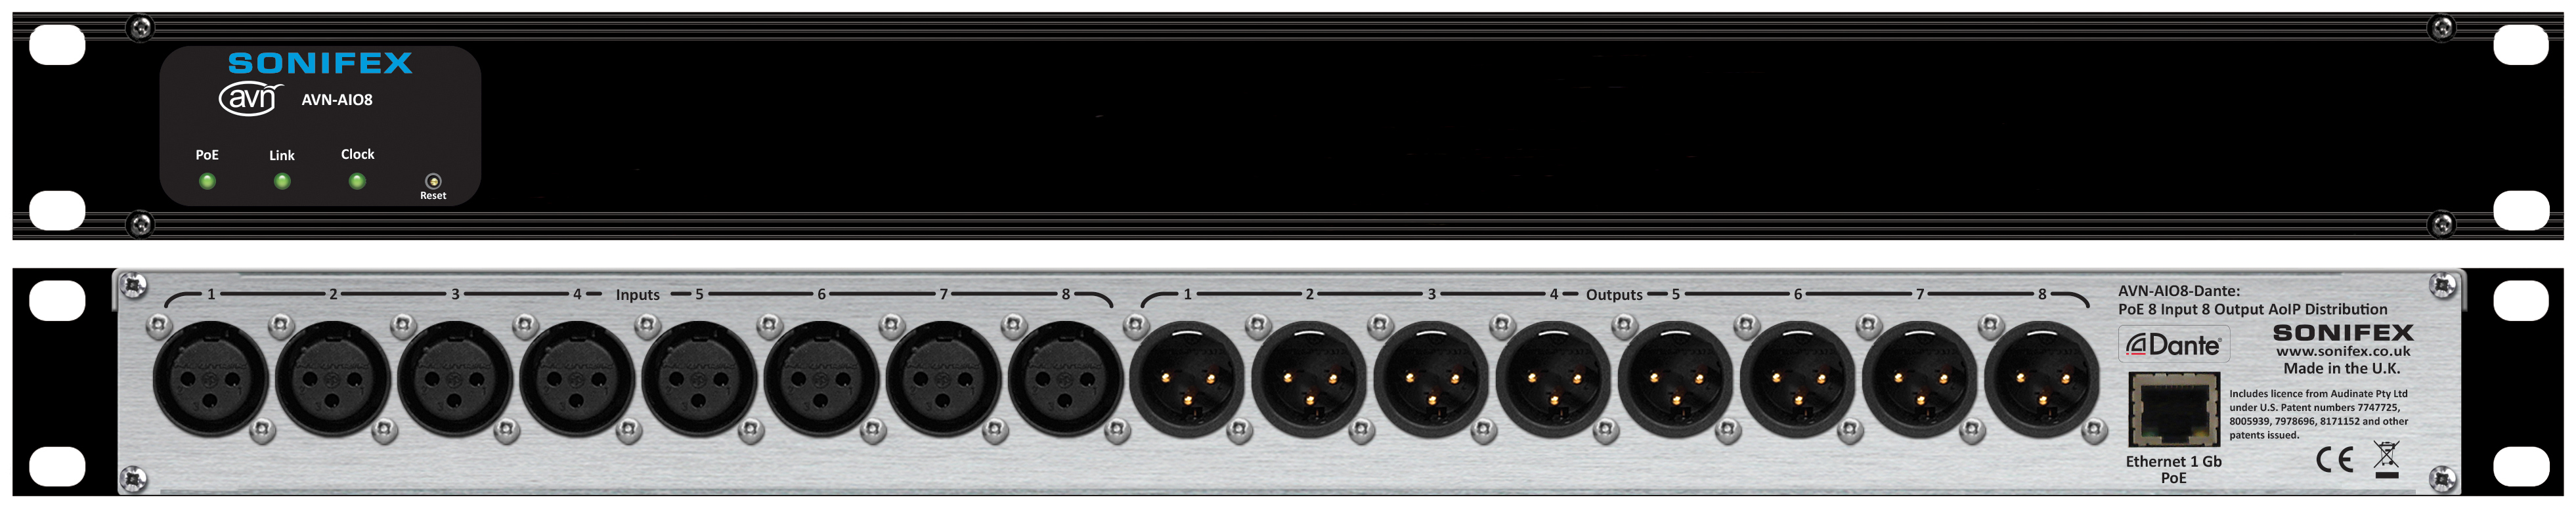 Sonifex Show Multi-Channel Dante Audio Interfaces at NAB 2019